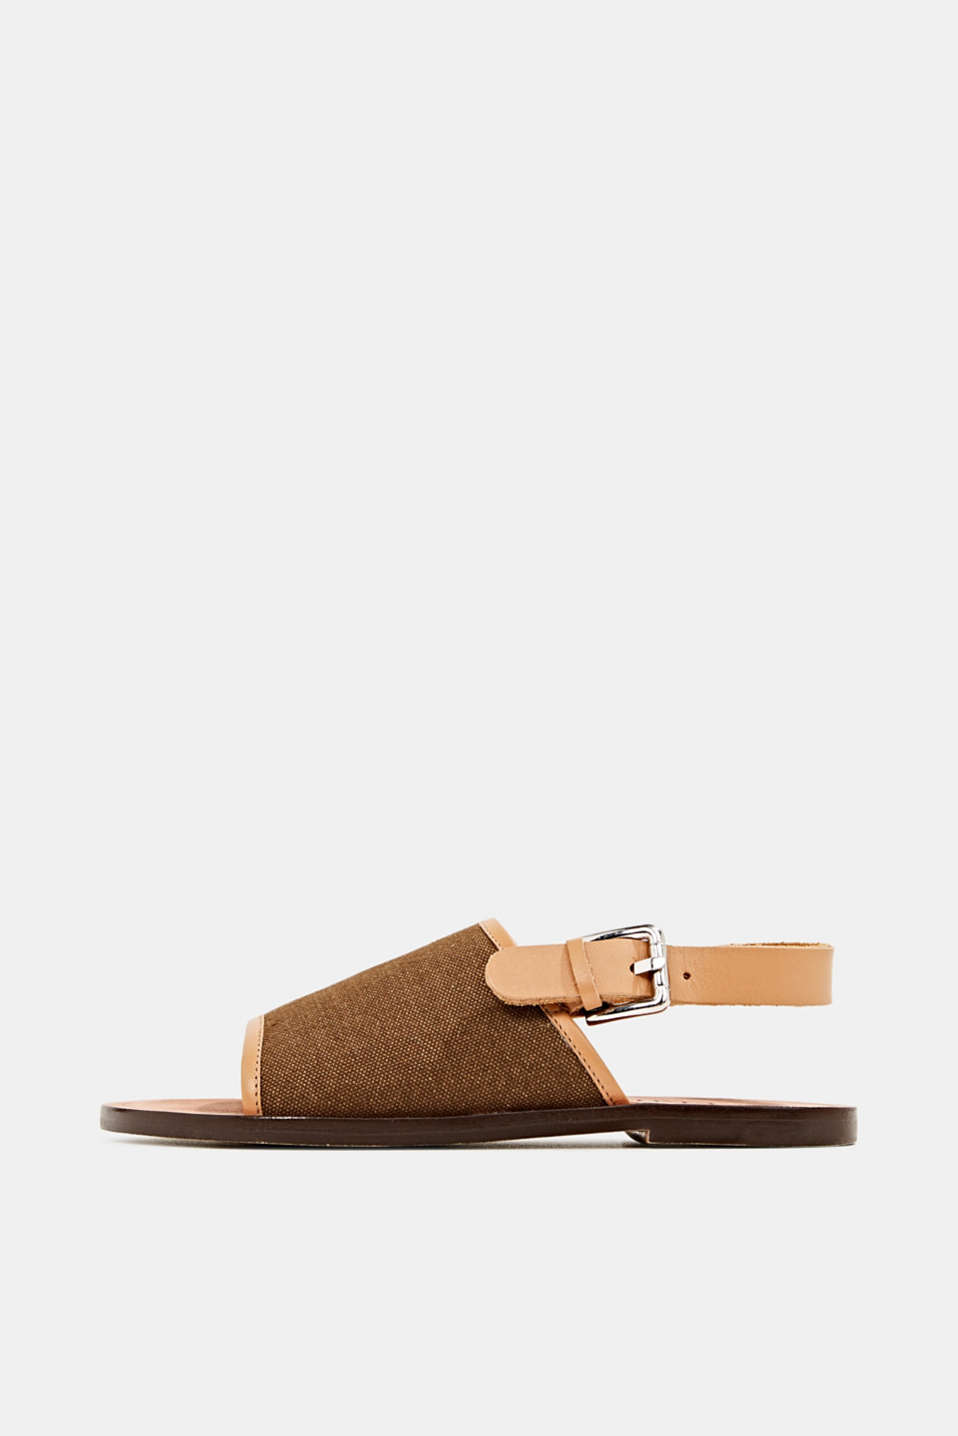 EarthColors® canvas sandals, SKIN BEIGE, detail image number 0